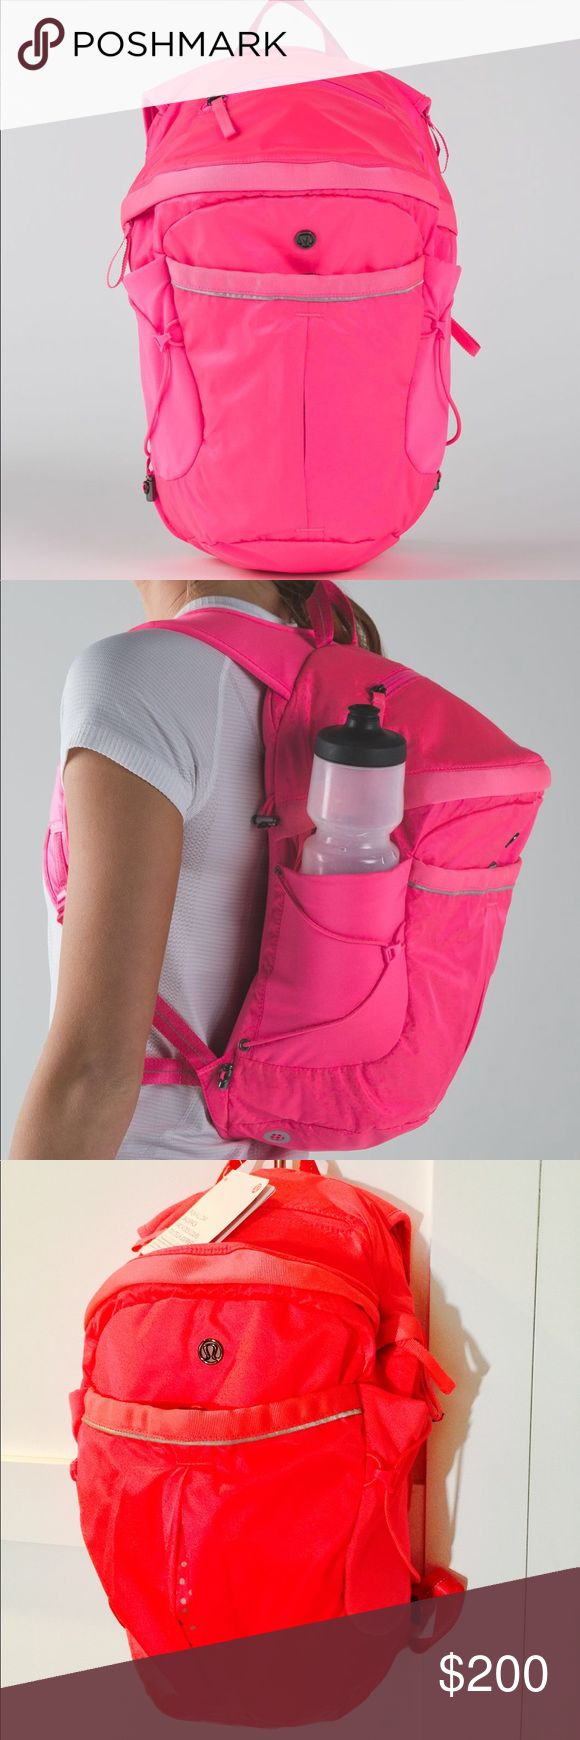 *RARE* BRAND NEW!! Lululemon NEON PINK Backpack Super cute! Brand new! Lululemon Run All Day Backpack. Color is more like stock photos I posted. Any questions... Just ask! 😊 lululemon athletica Bags Backpacks